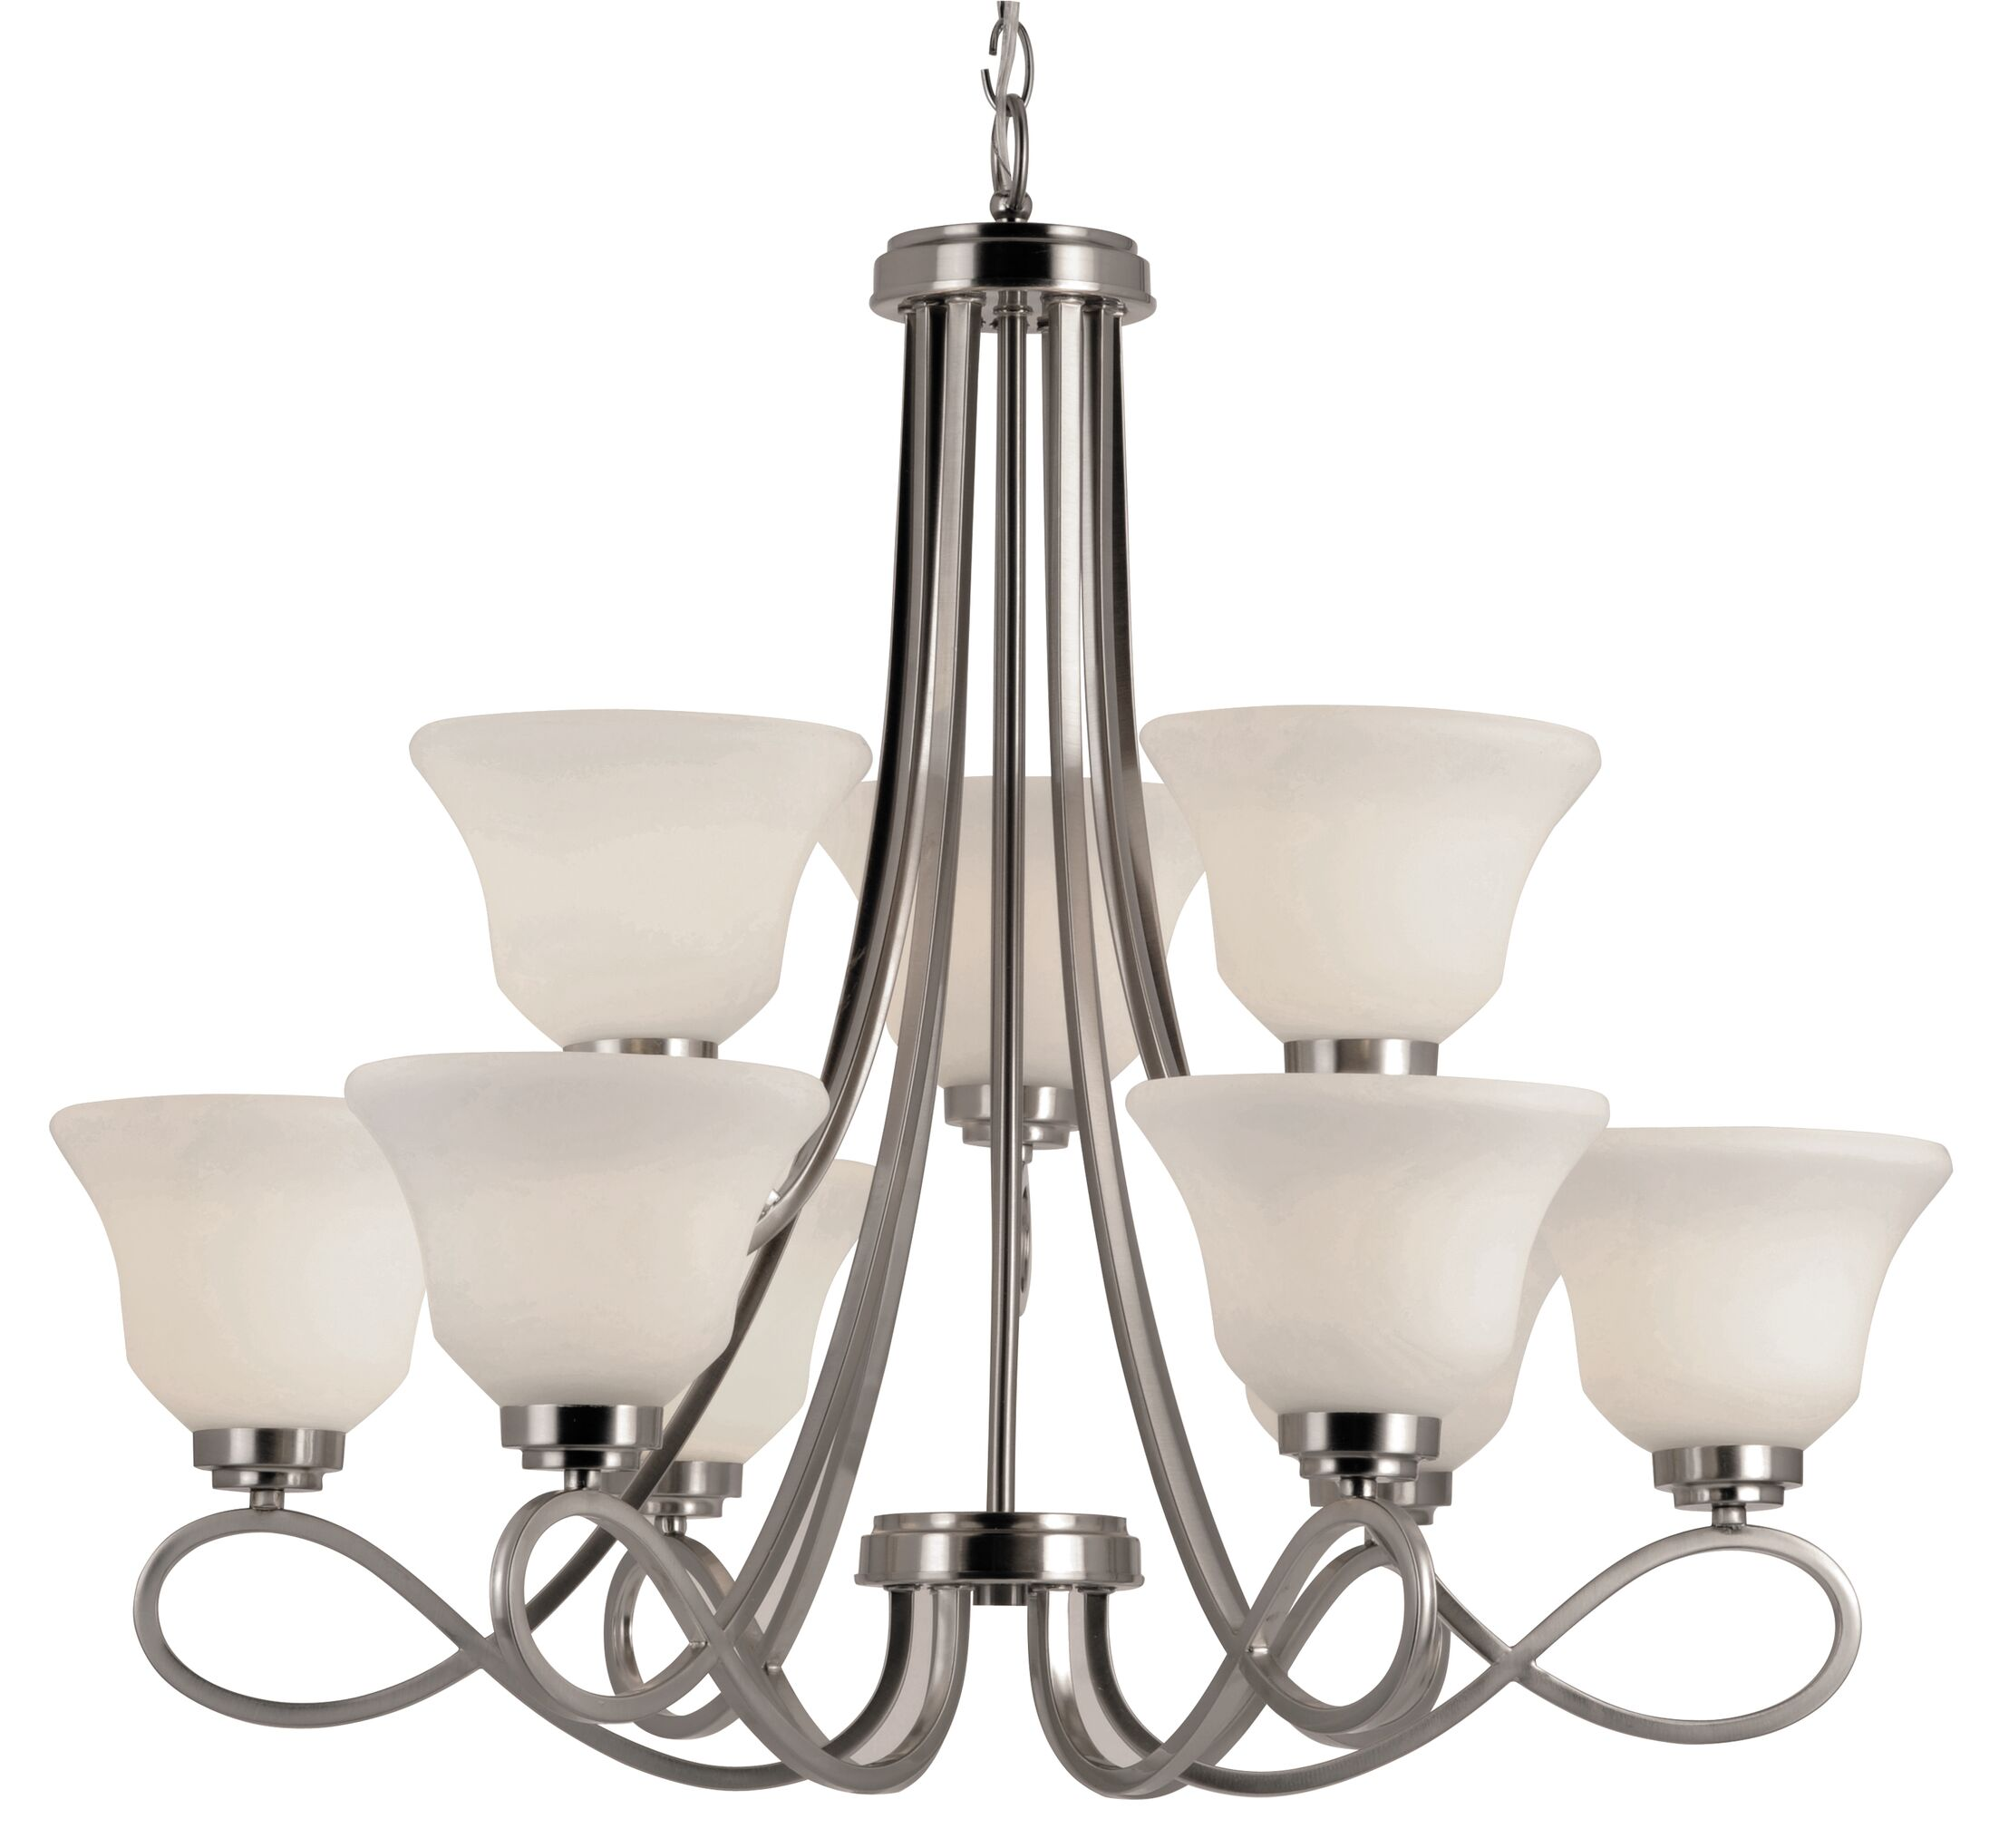 Cavallacci 9-Light Shaded Chandelier